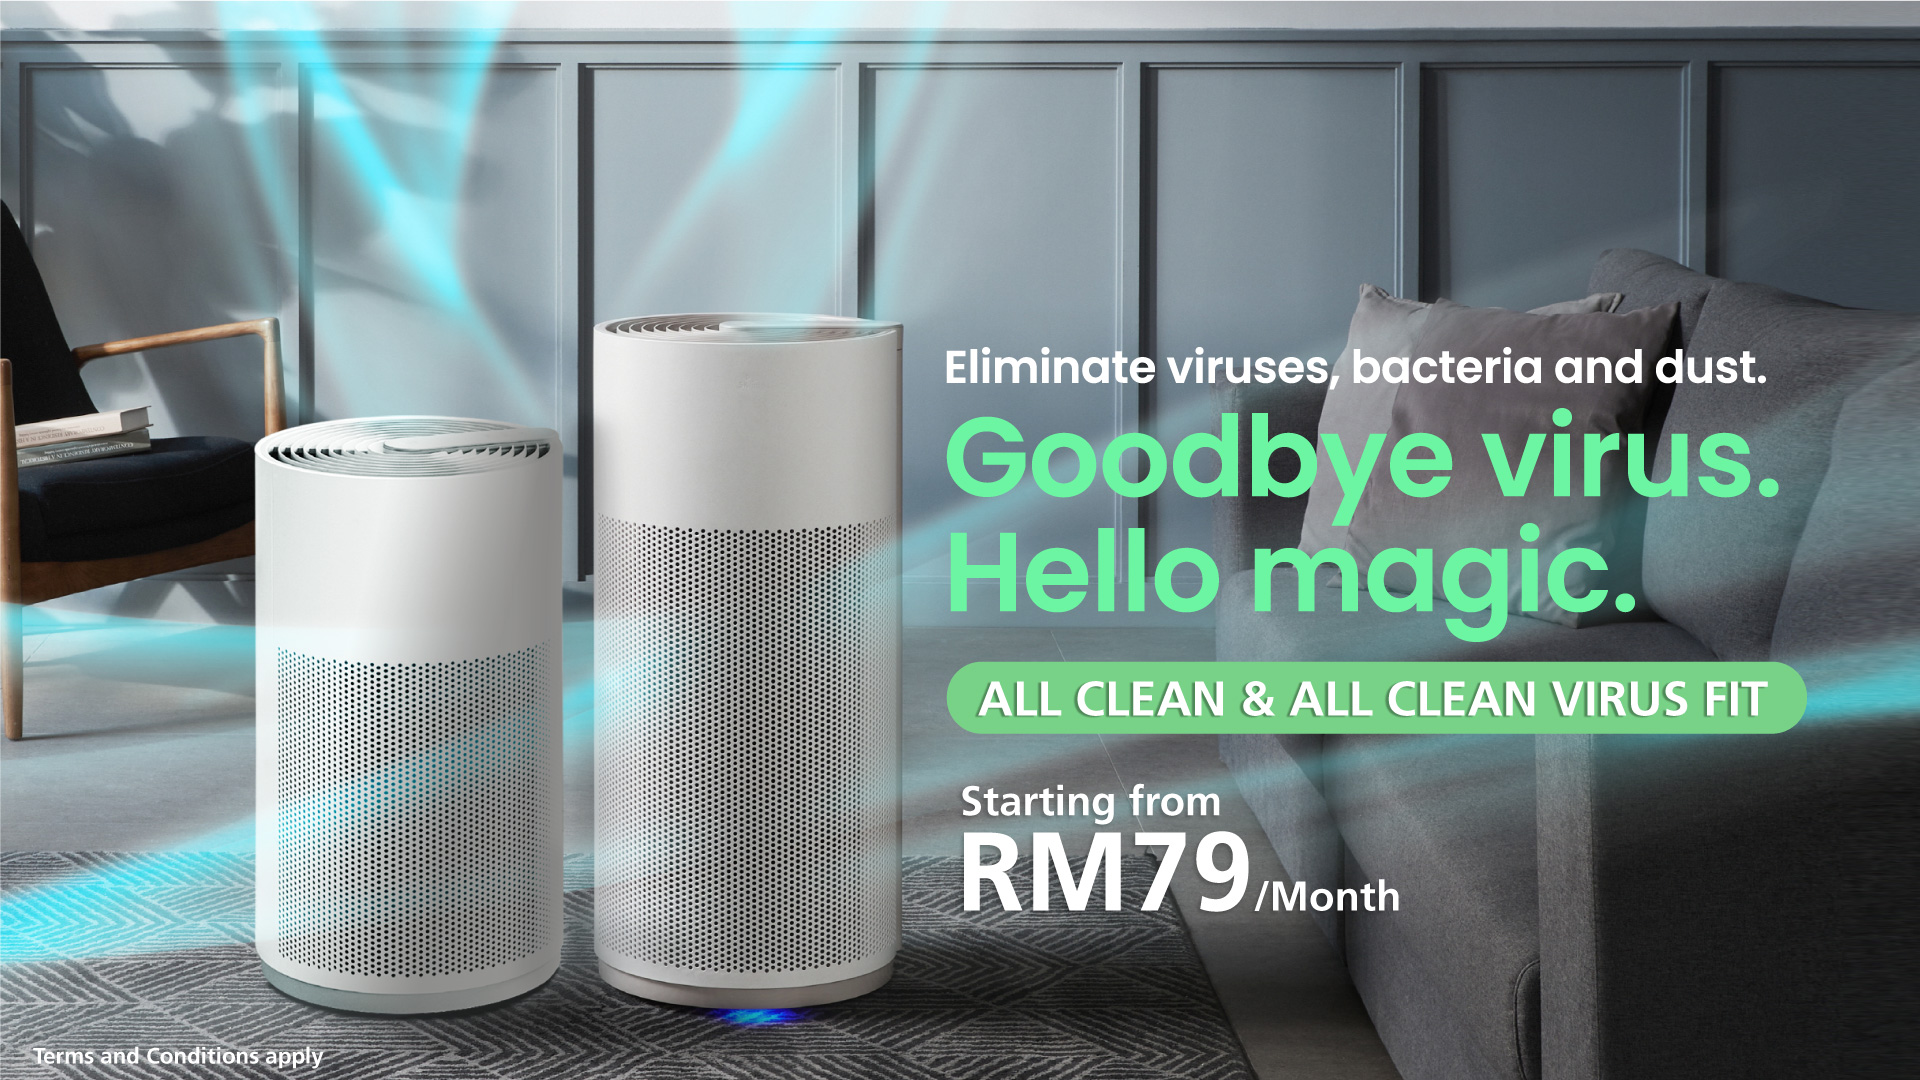 Goodbye virus. Hello magic. ALL CLEAN & ALL CLEAN VIRUS FIT Eliminate viruses, bacteria and dust. Starting from RM79/Month